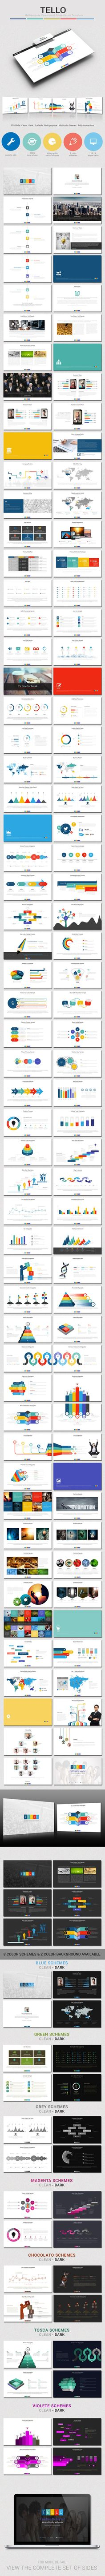 Tello Powerpoint Template #powerpoint #powerpointtemplate Download: http://graphicriver.net/item/tello-powerpoint-template/10040798?ref=ksioks